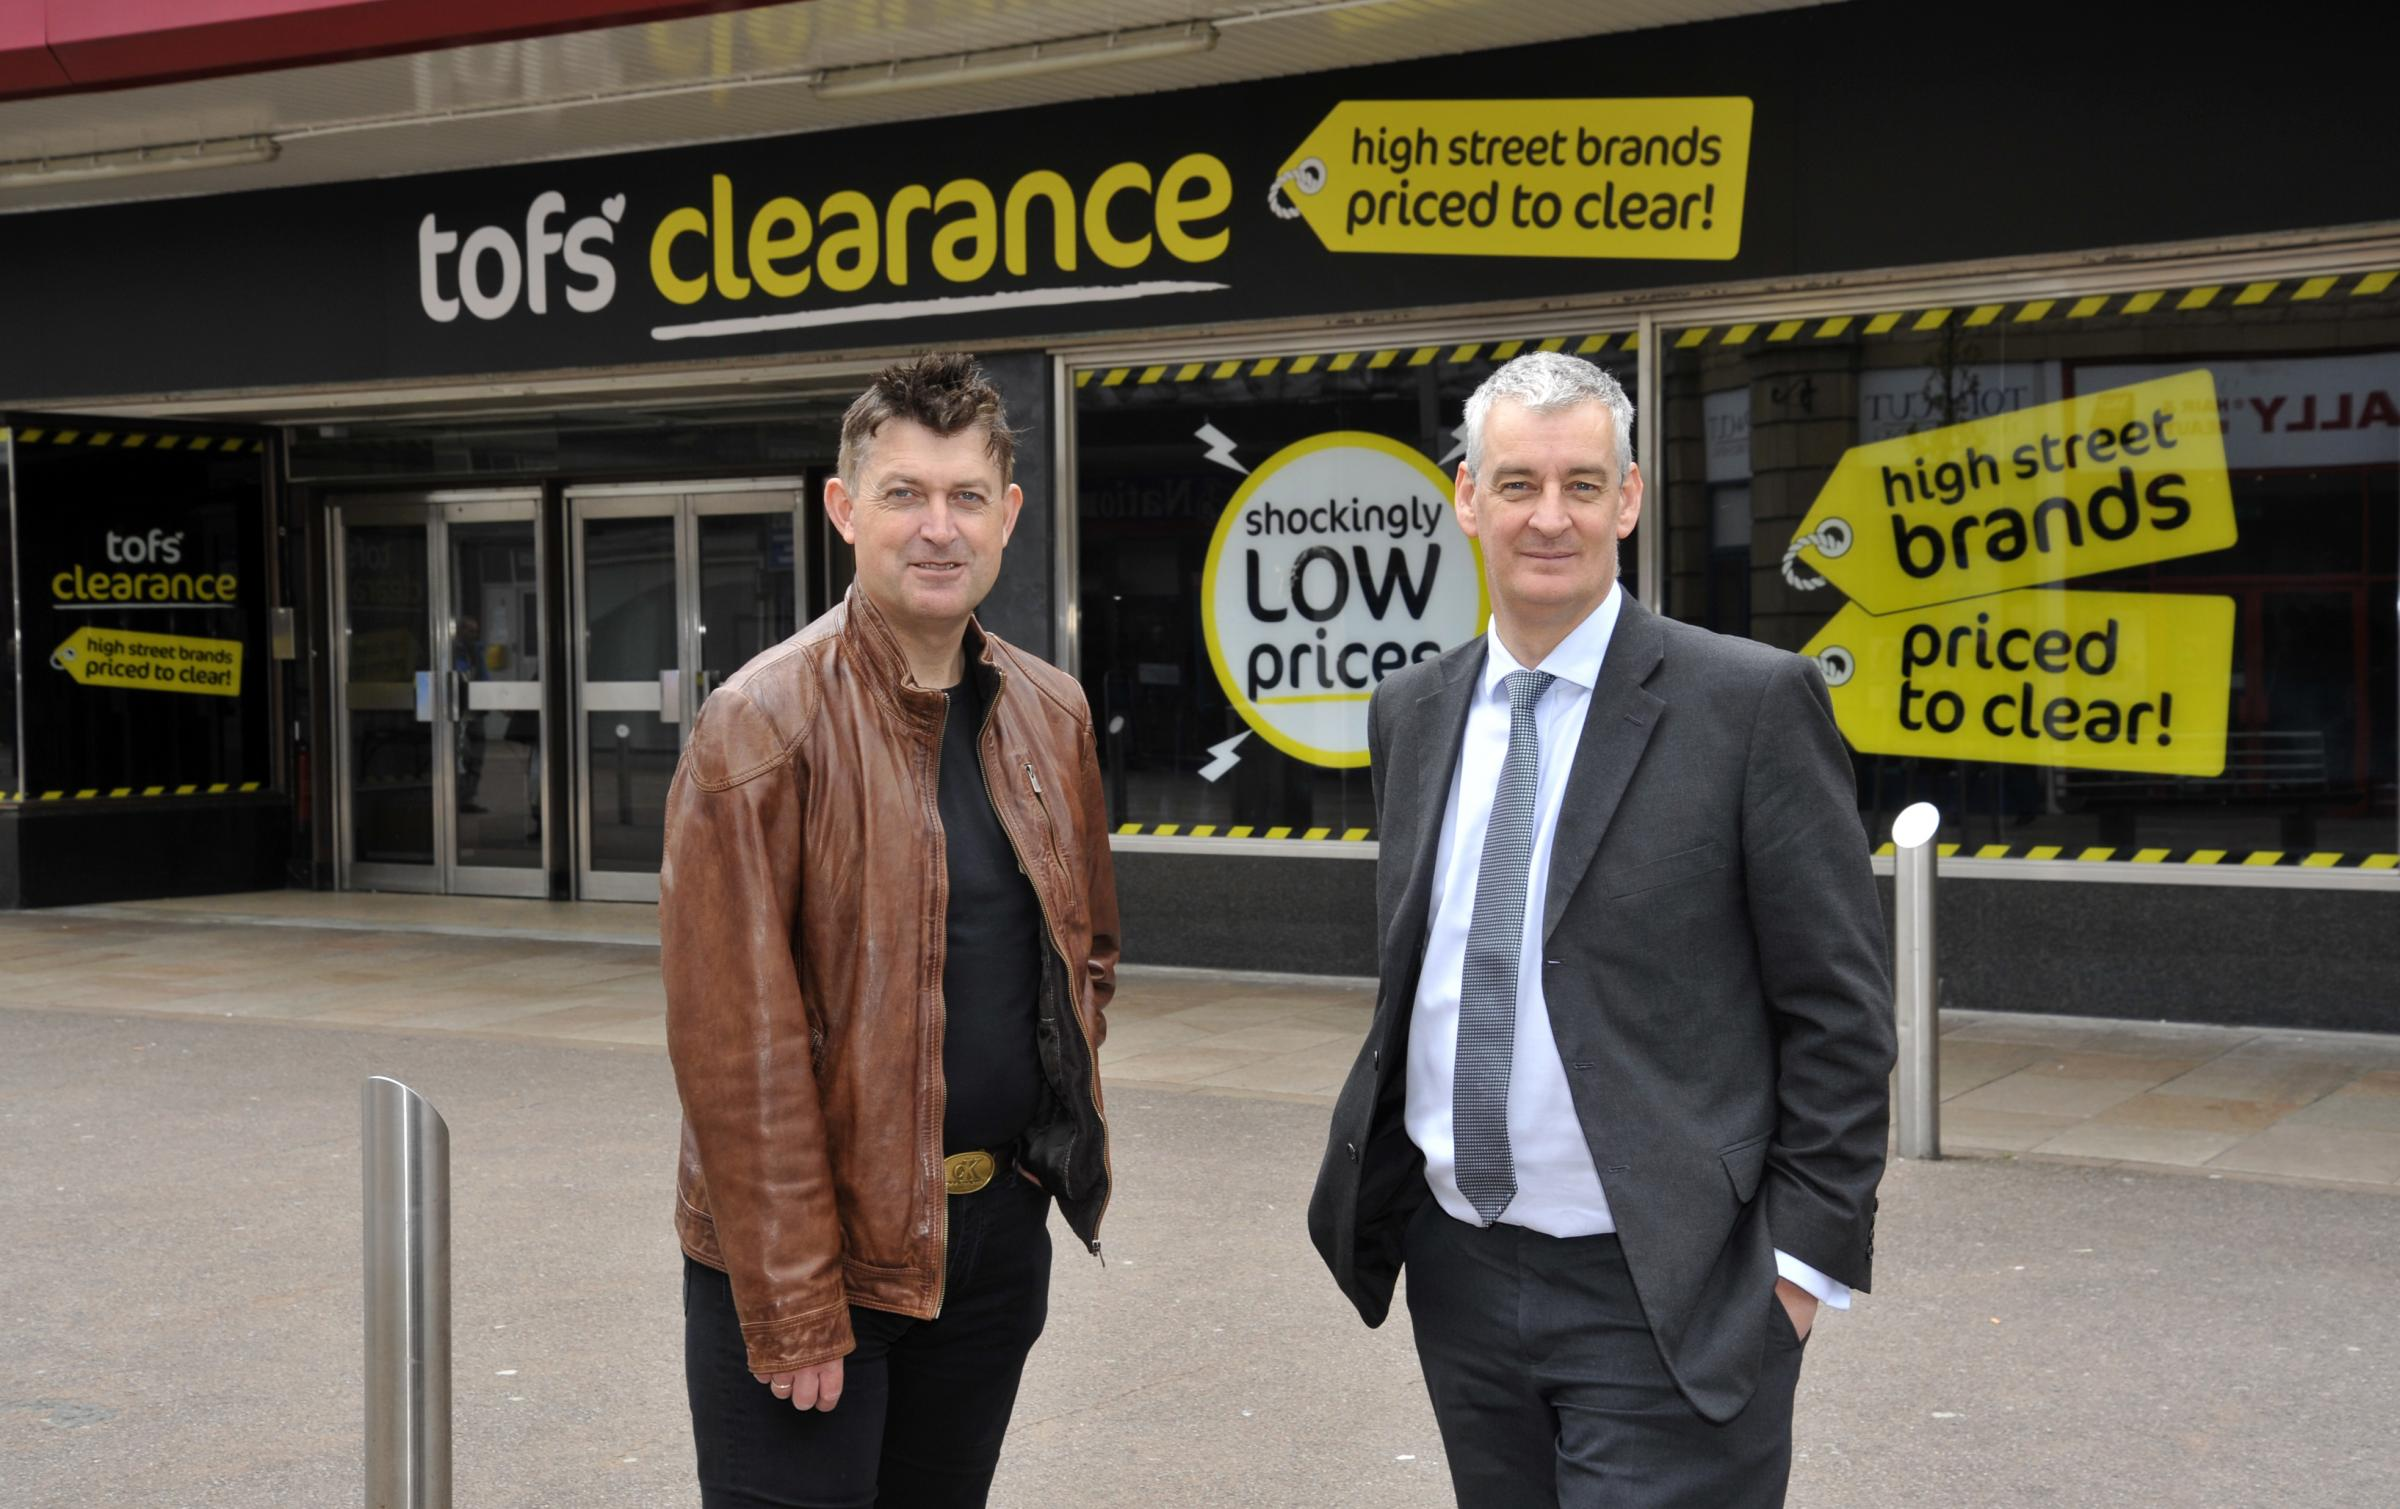 NEW SHOP: Coun Miles Parkinson, Leader of the Council and MP Graham Jones outside TOFS on Broadway in Accrington.